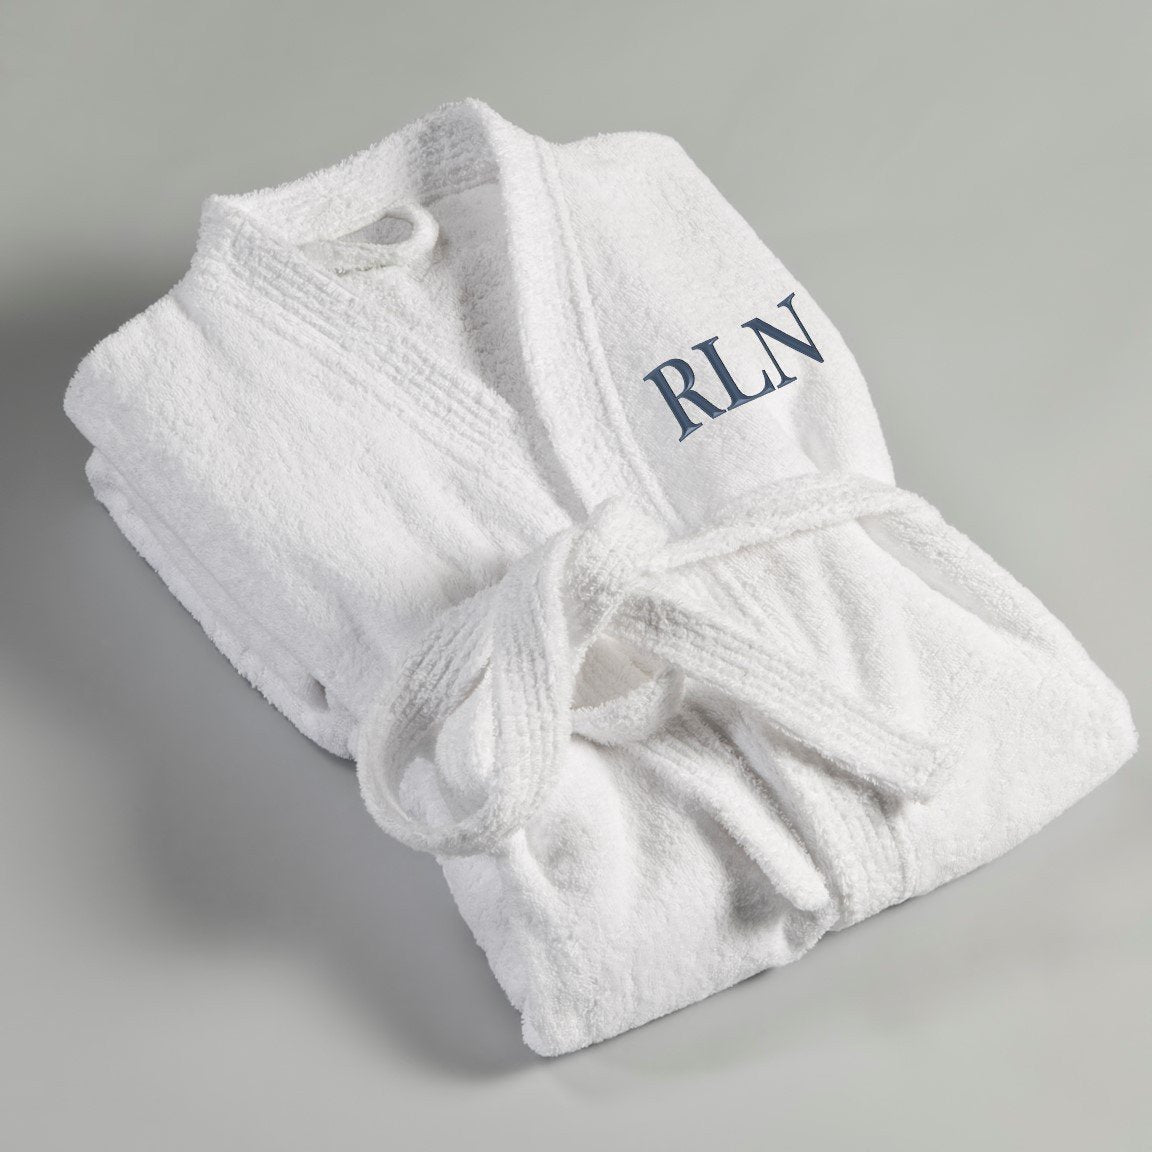 Personalized-Bathrobe-Mens-Embroidered